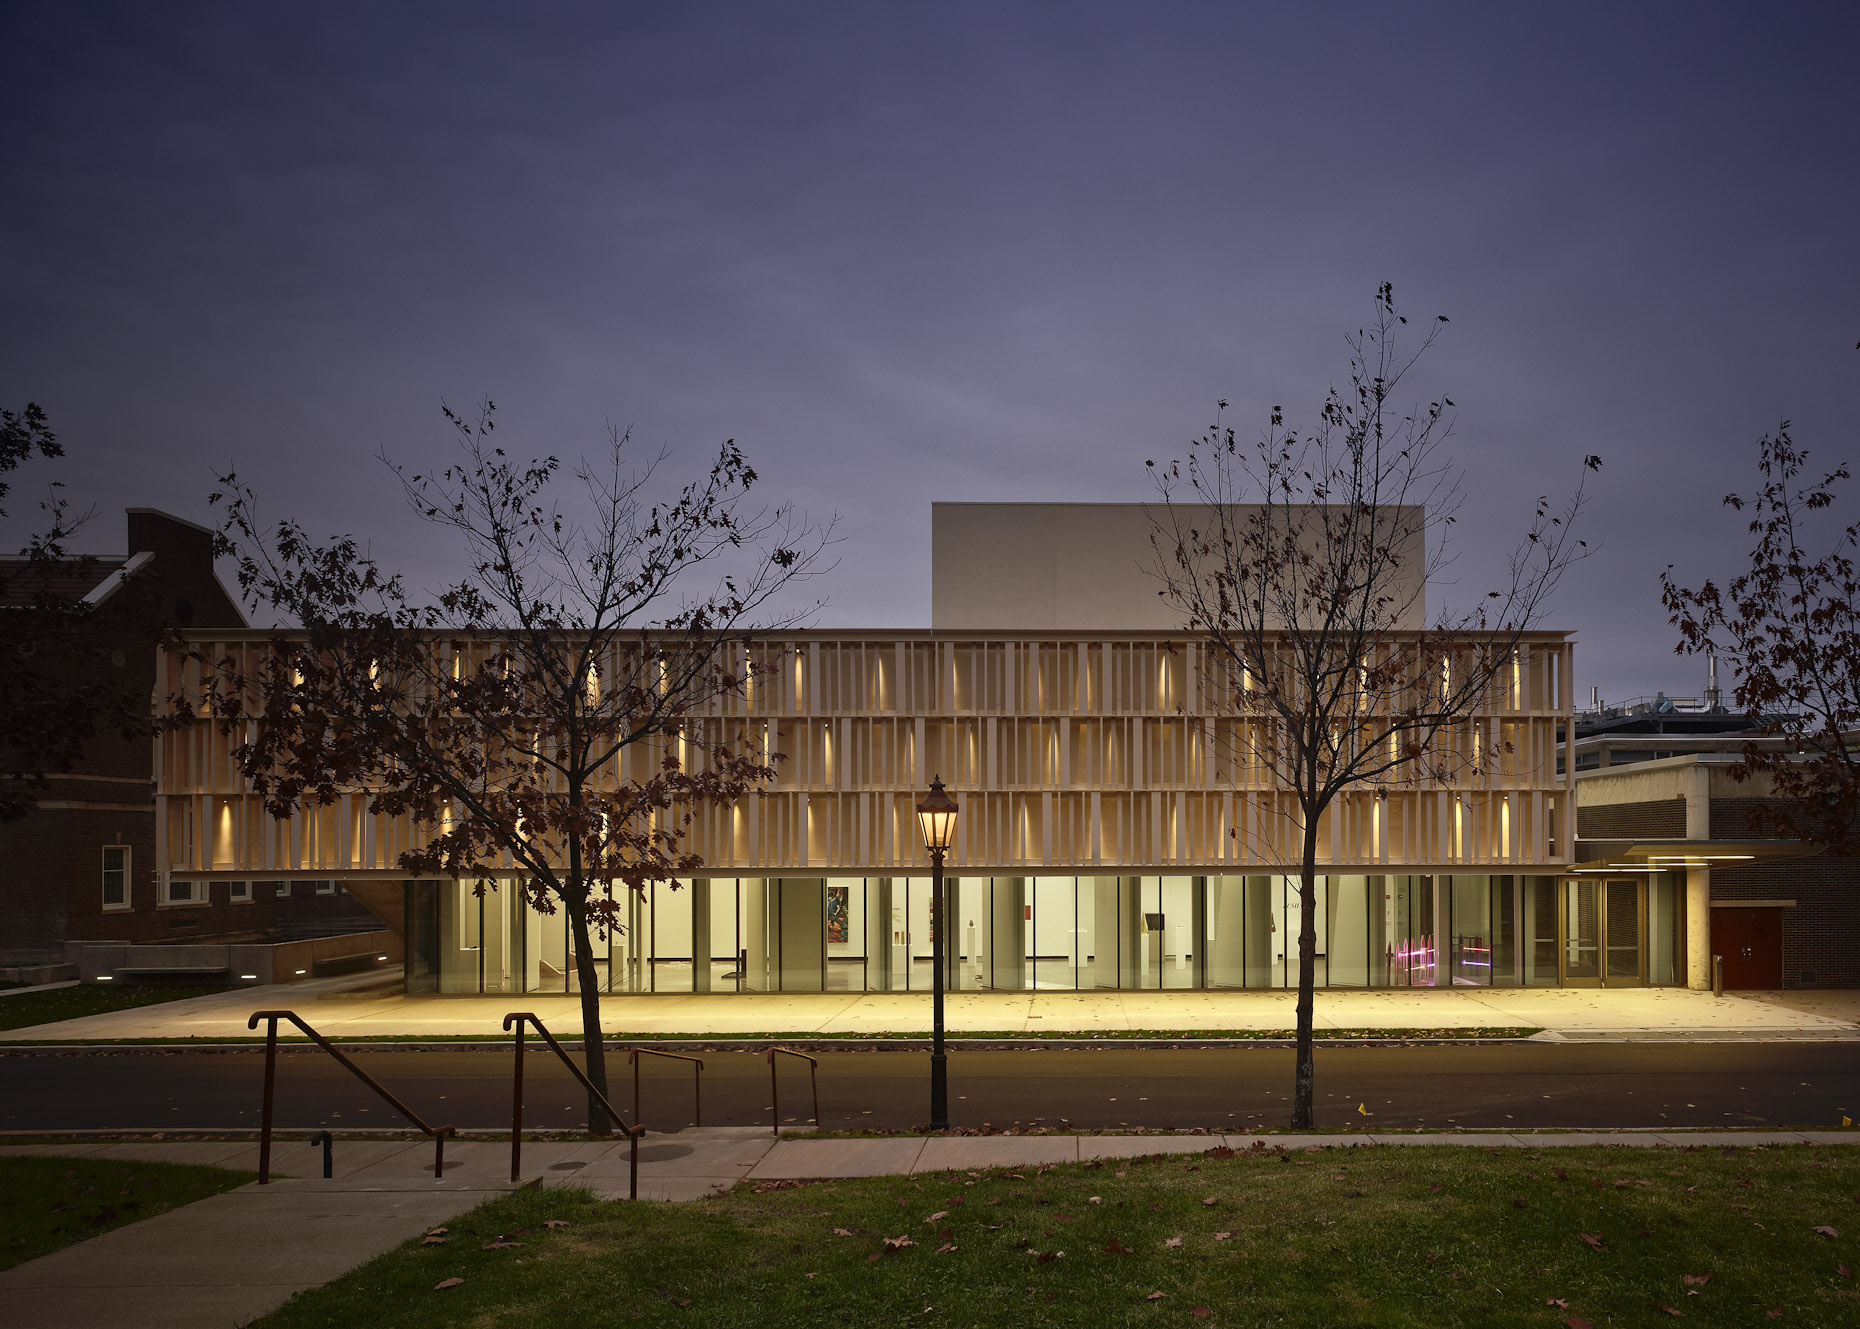 McGee Art Pavilion at New York State College of Ceramics at Alfred University by Ikon.5 Architects